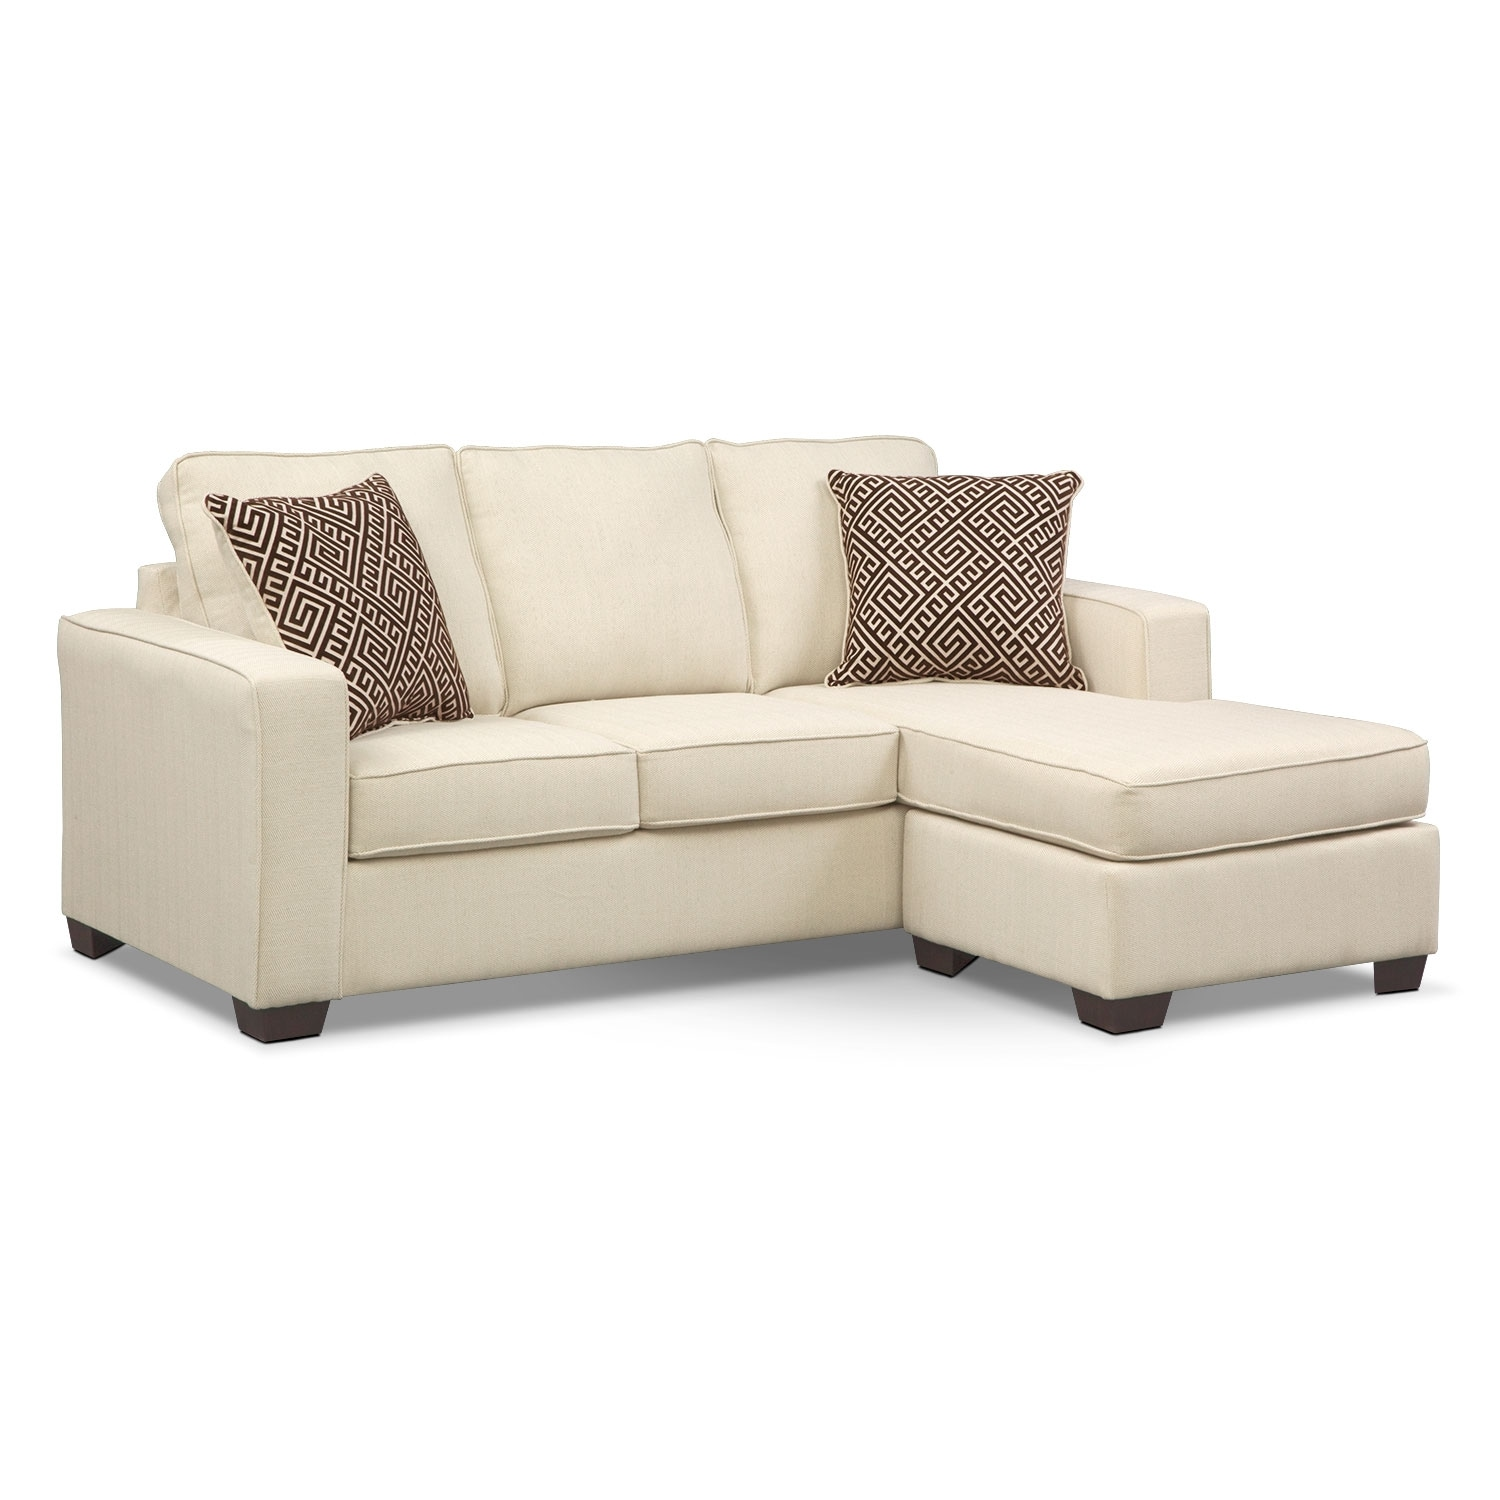 Sterling Memory Foam Sleeper Sofa With Chaise Beige Value City Furniture